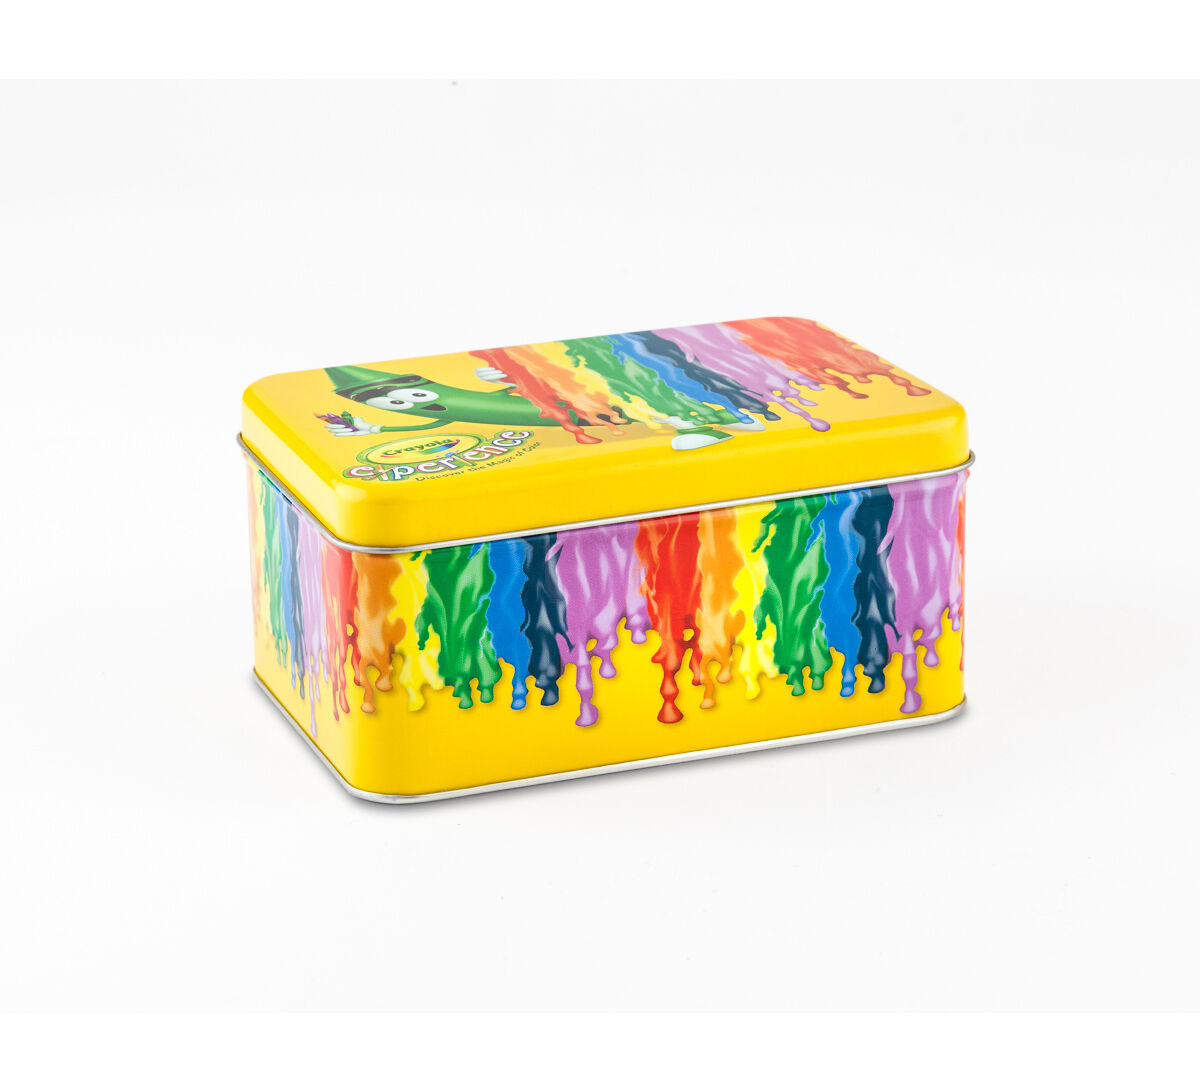 Crayola Dripping Wax Crayon Storage Tin